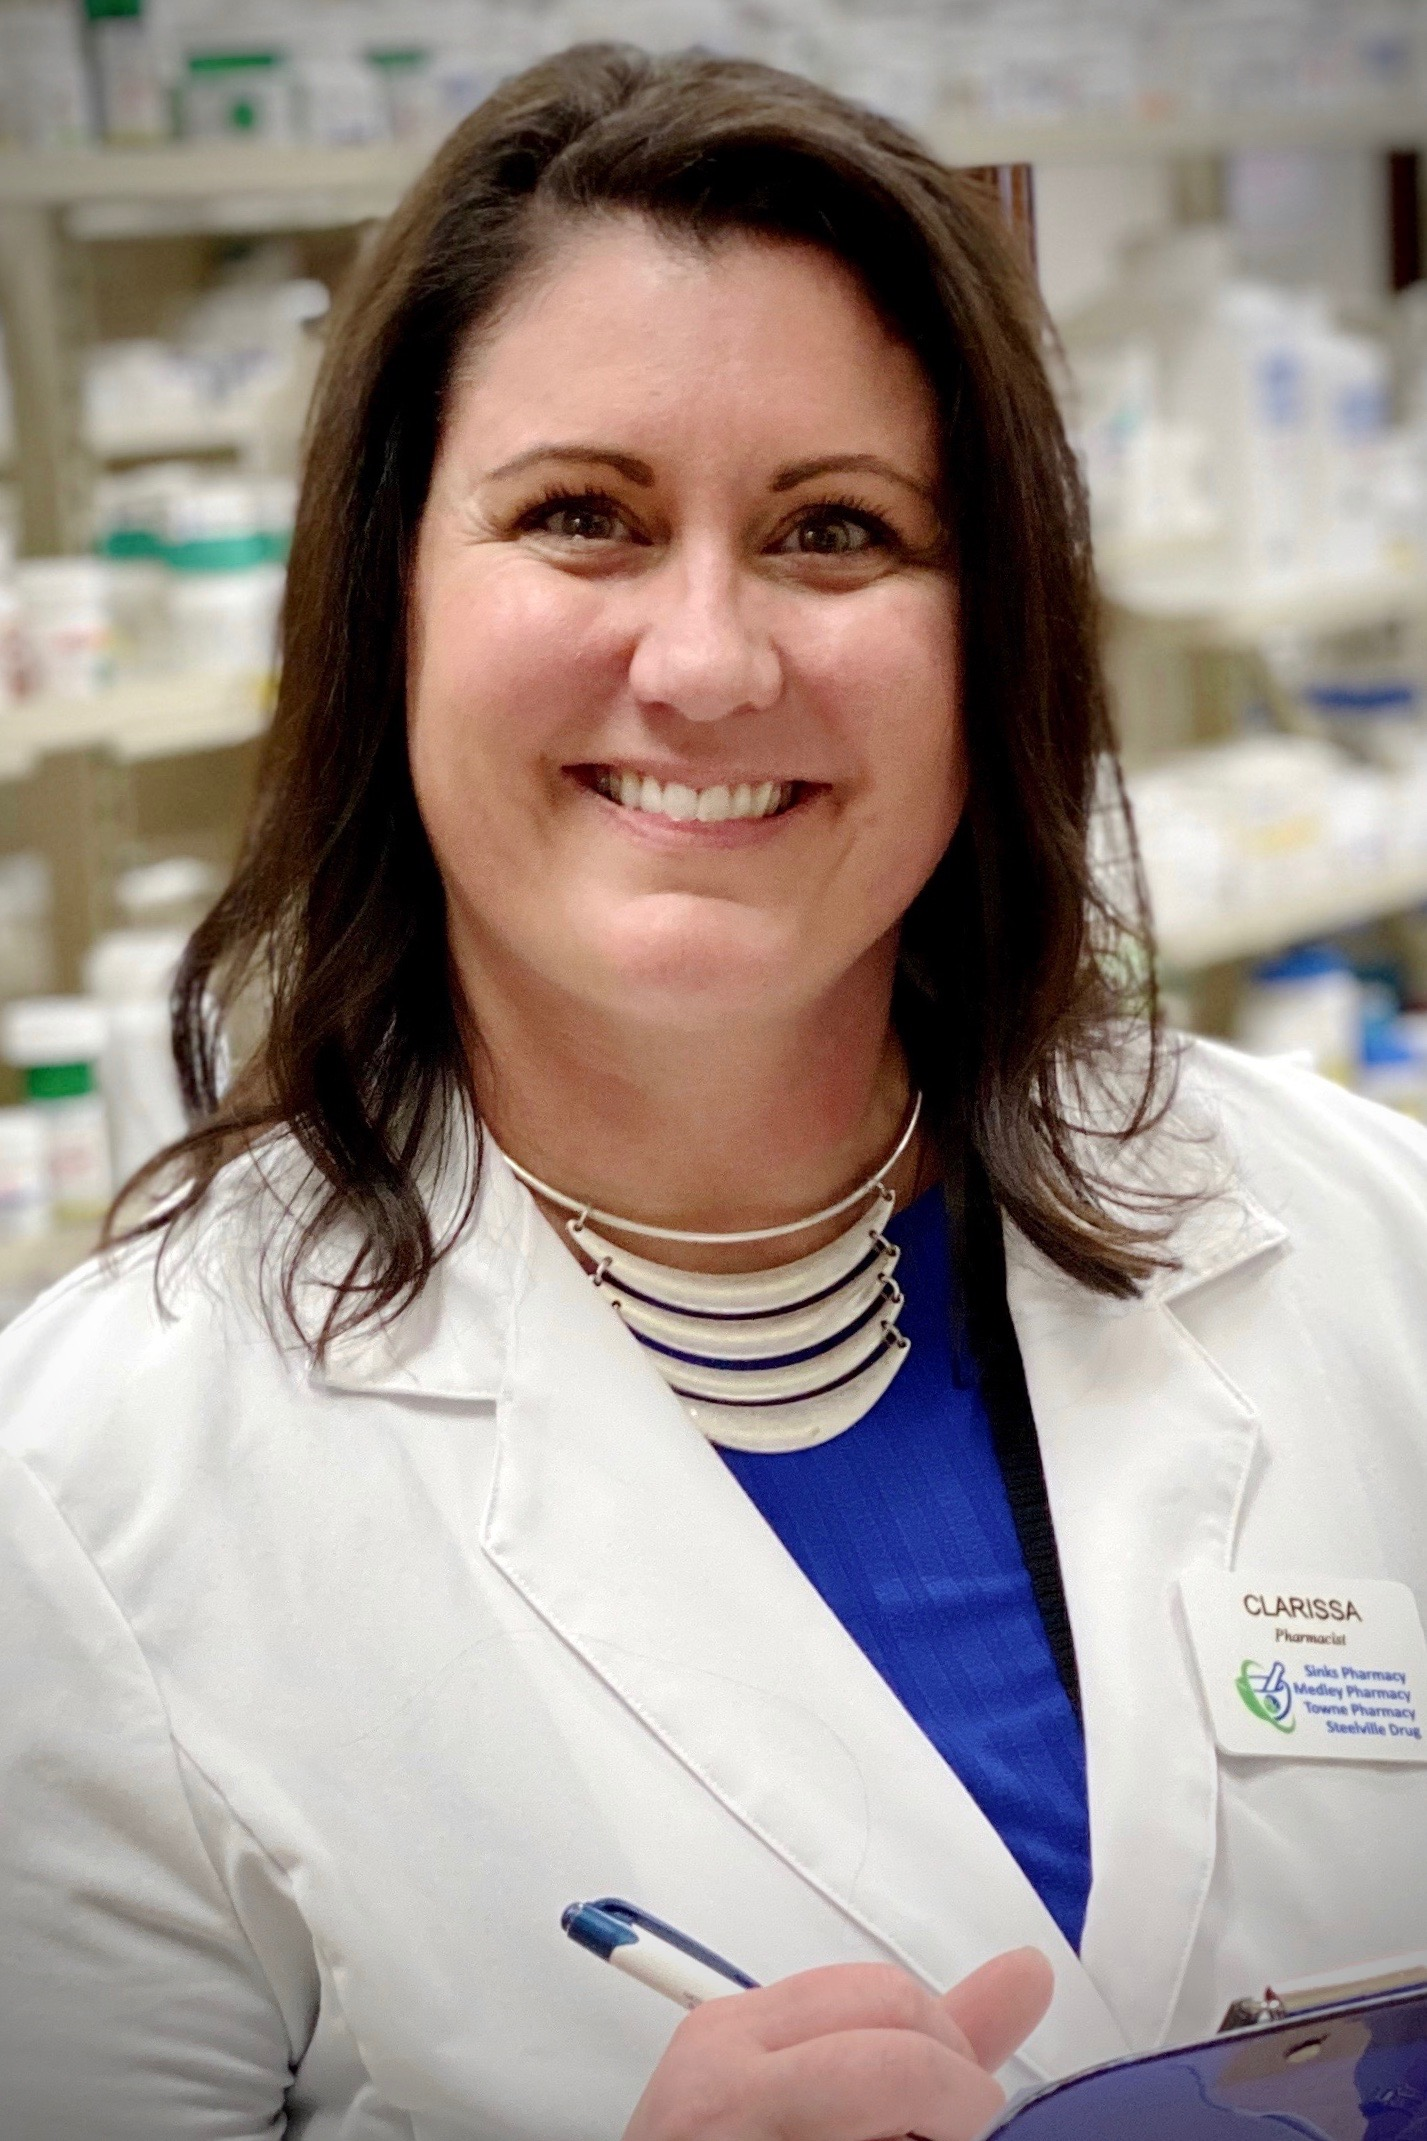 pharmacist in charge Dr. Clarissa Hall